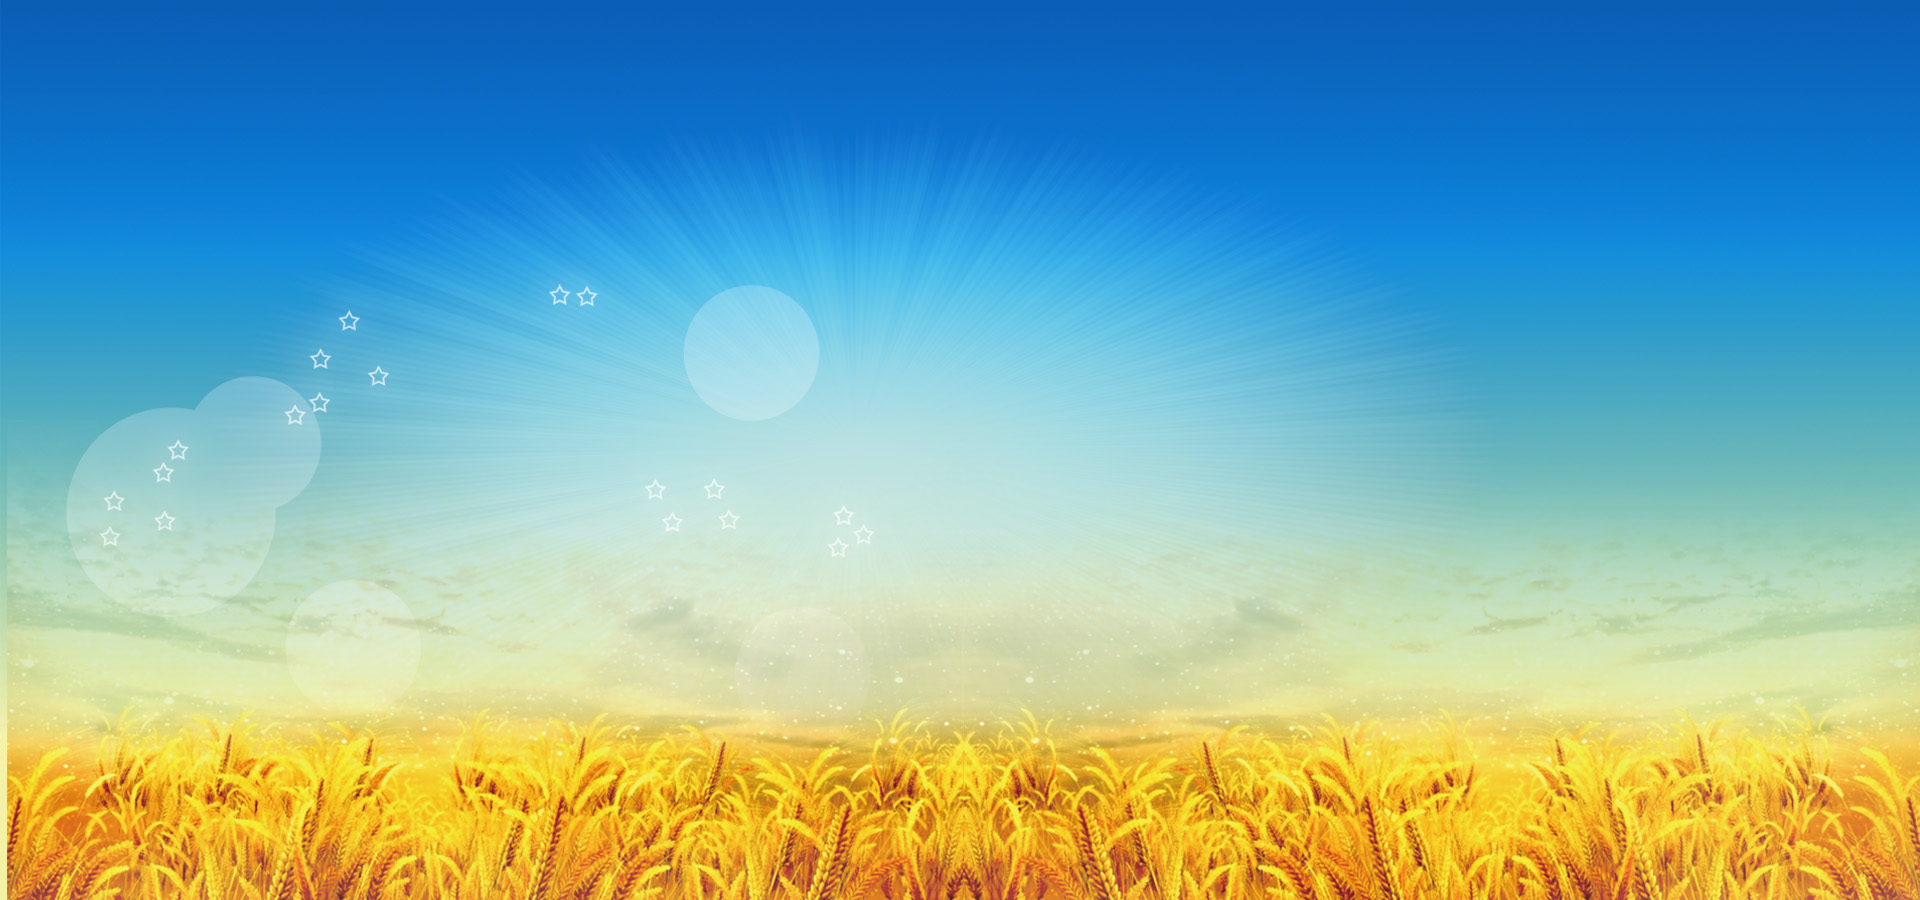 large harvest season background  golden  blue  sky